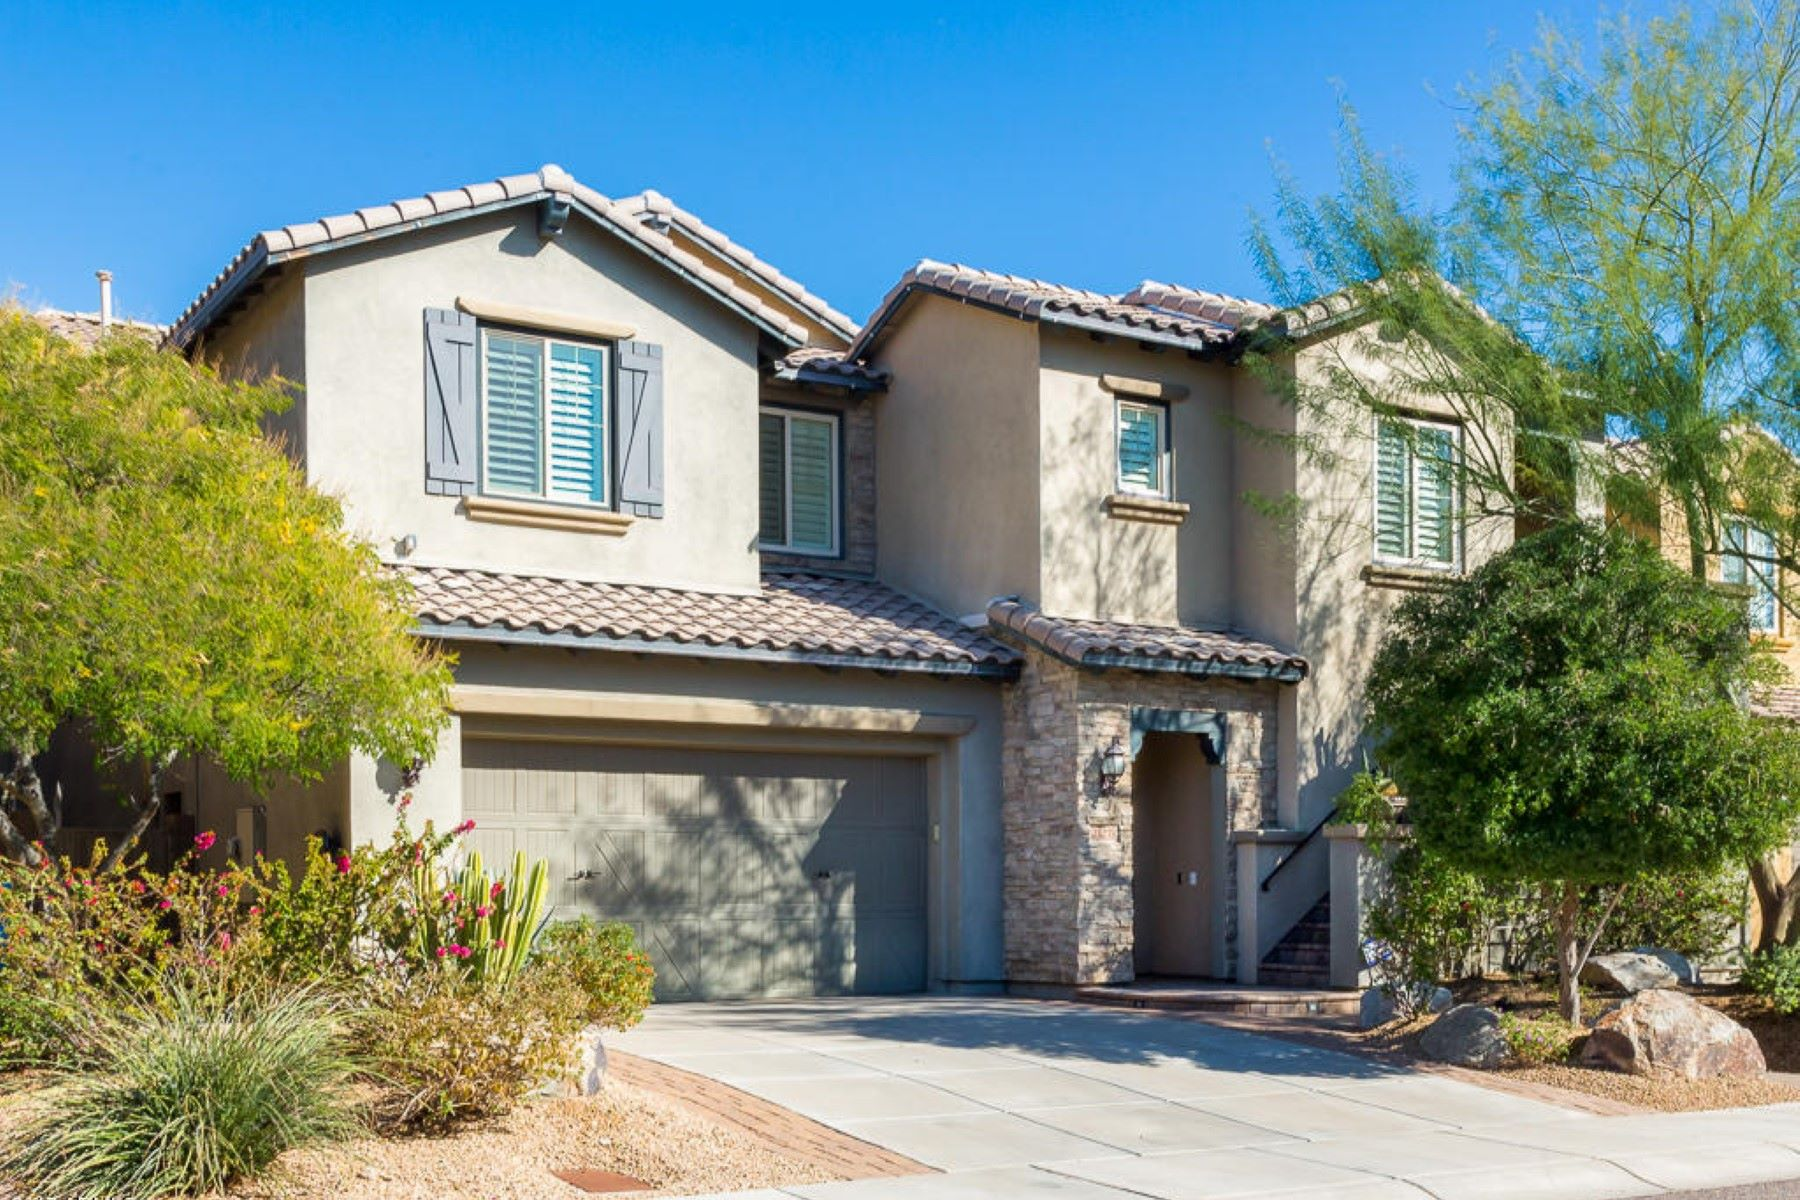 Single Family Home for Sale at Beautiful home in the highly desirable Desert Ridge neighborhood of Fireside 21215 N 38th Pl Phoenix, Arizona, 85050 United States